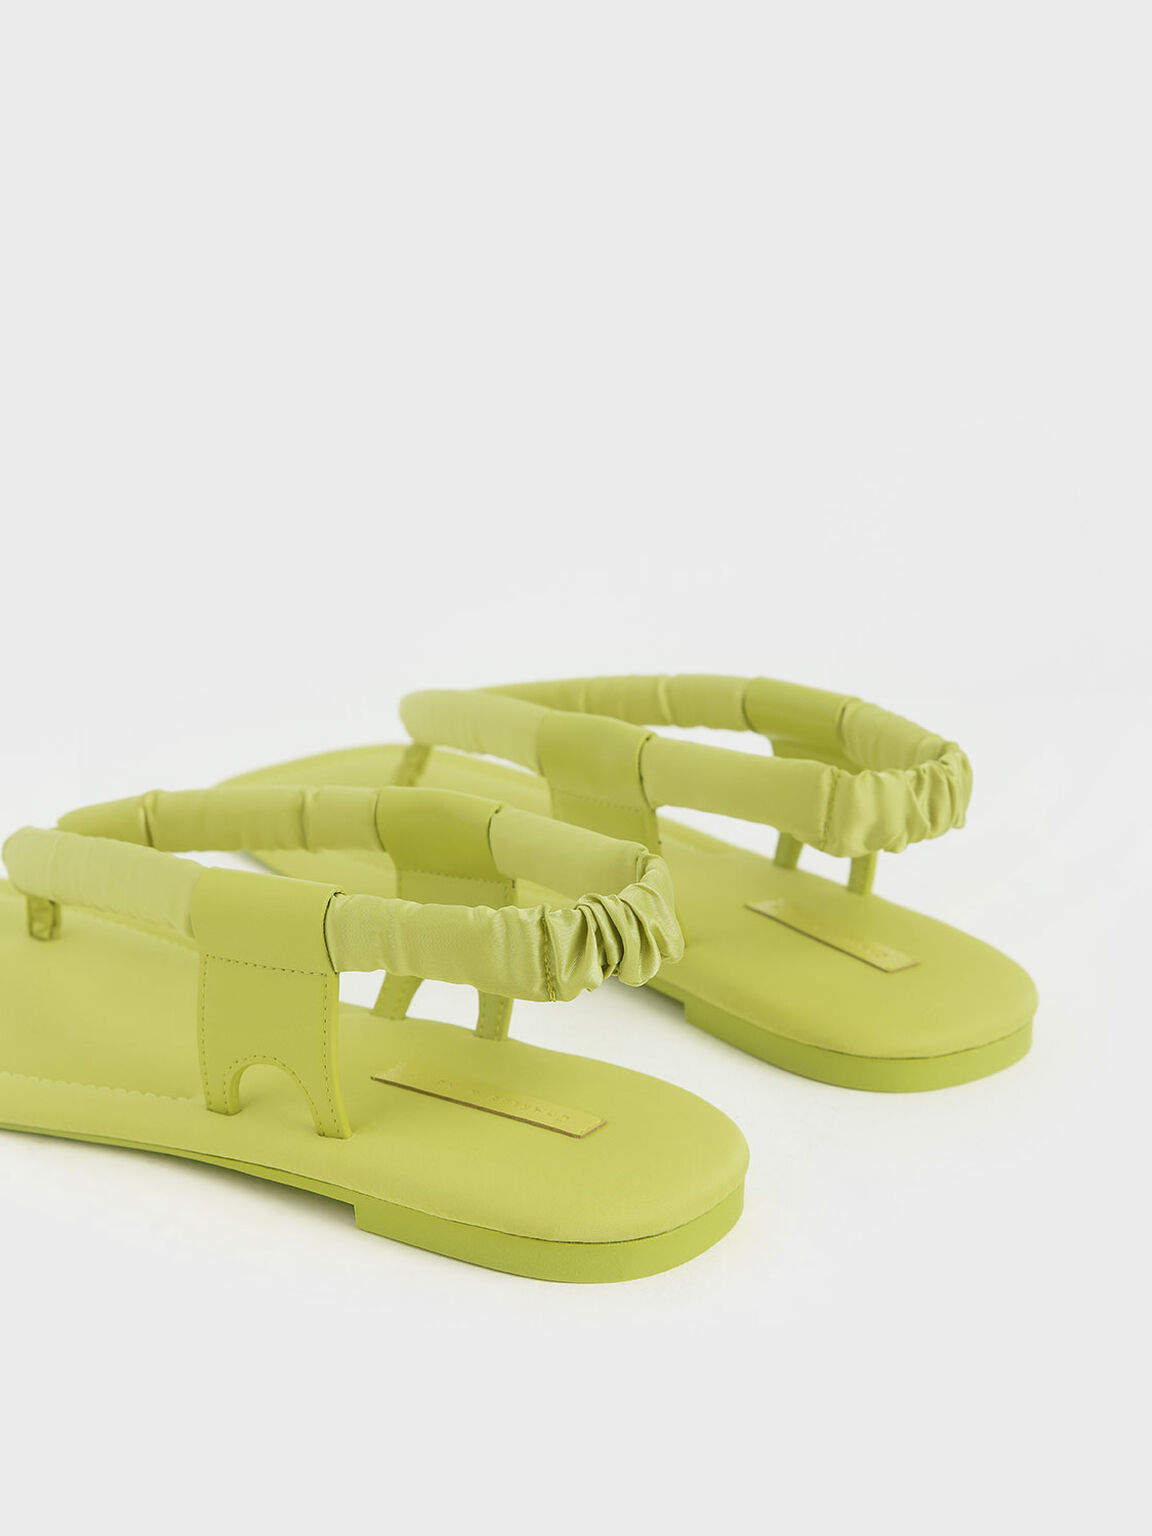 Puffy Strap Thong Sandals, Green, hi-res